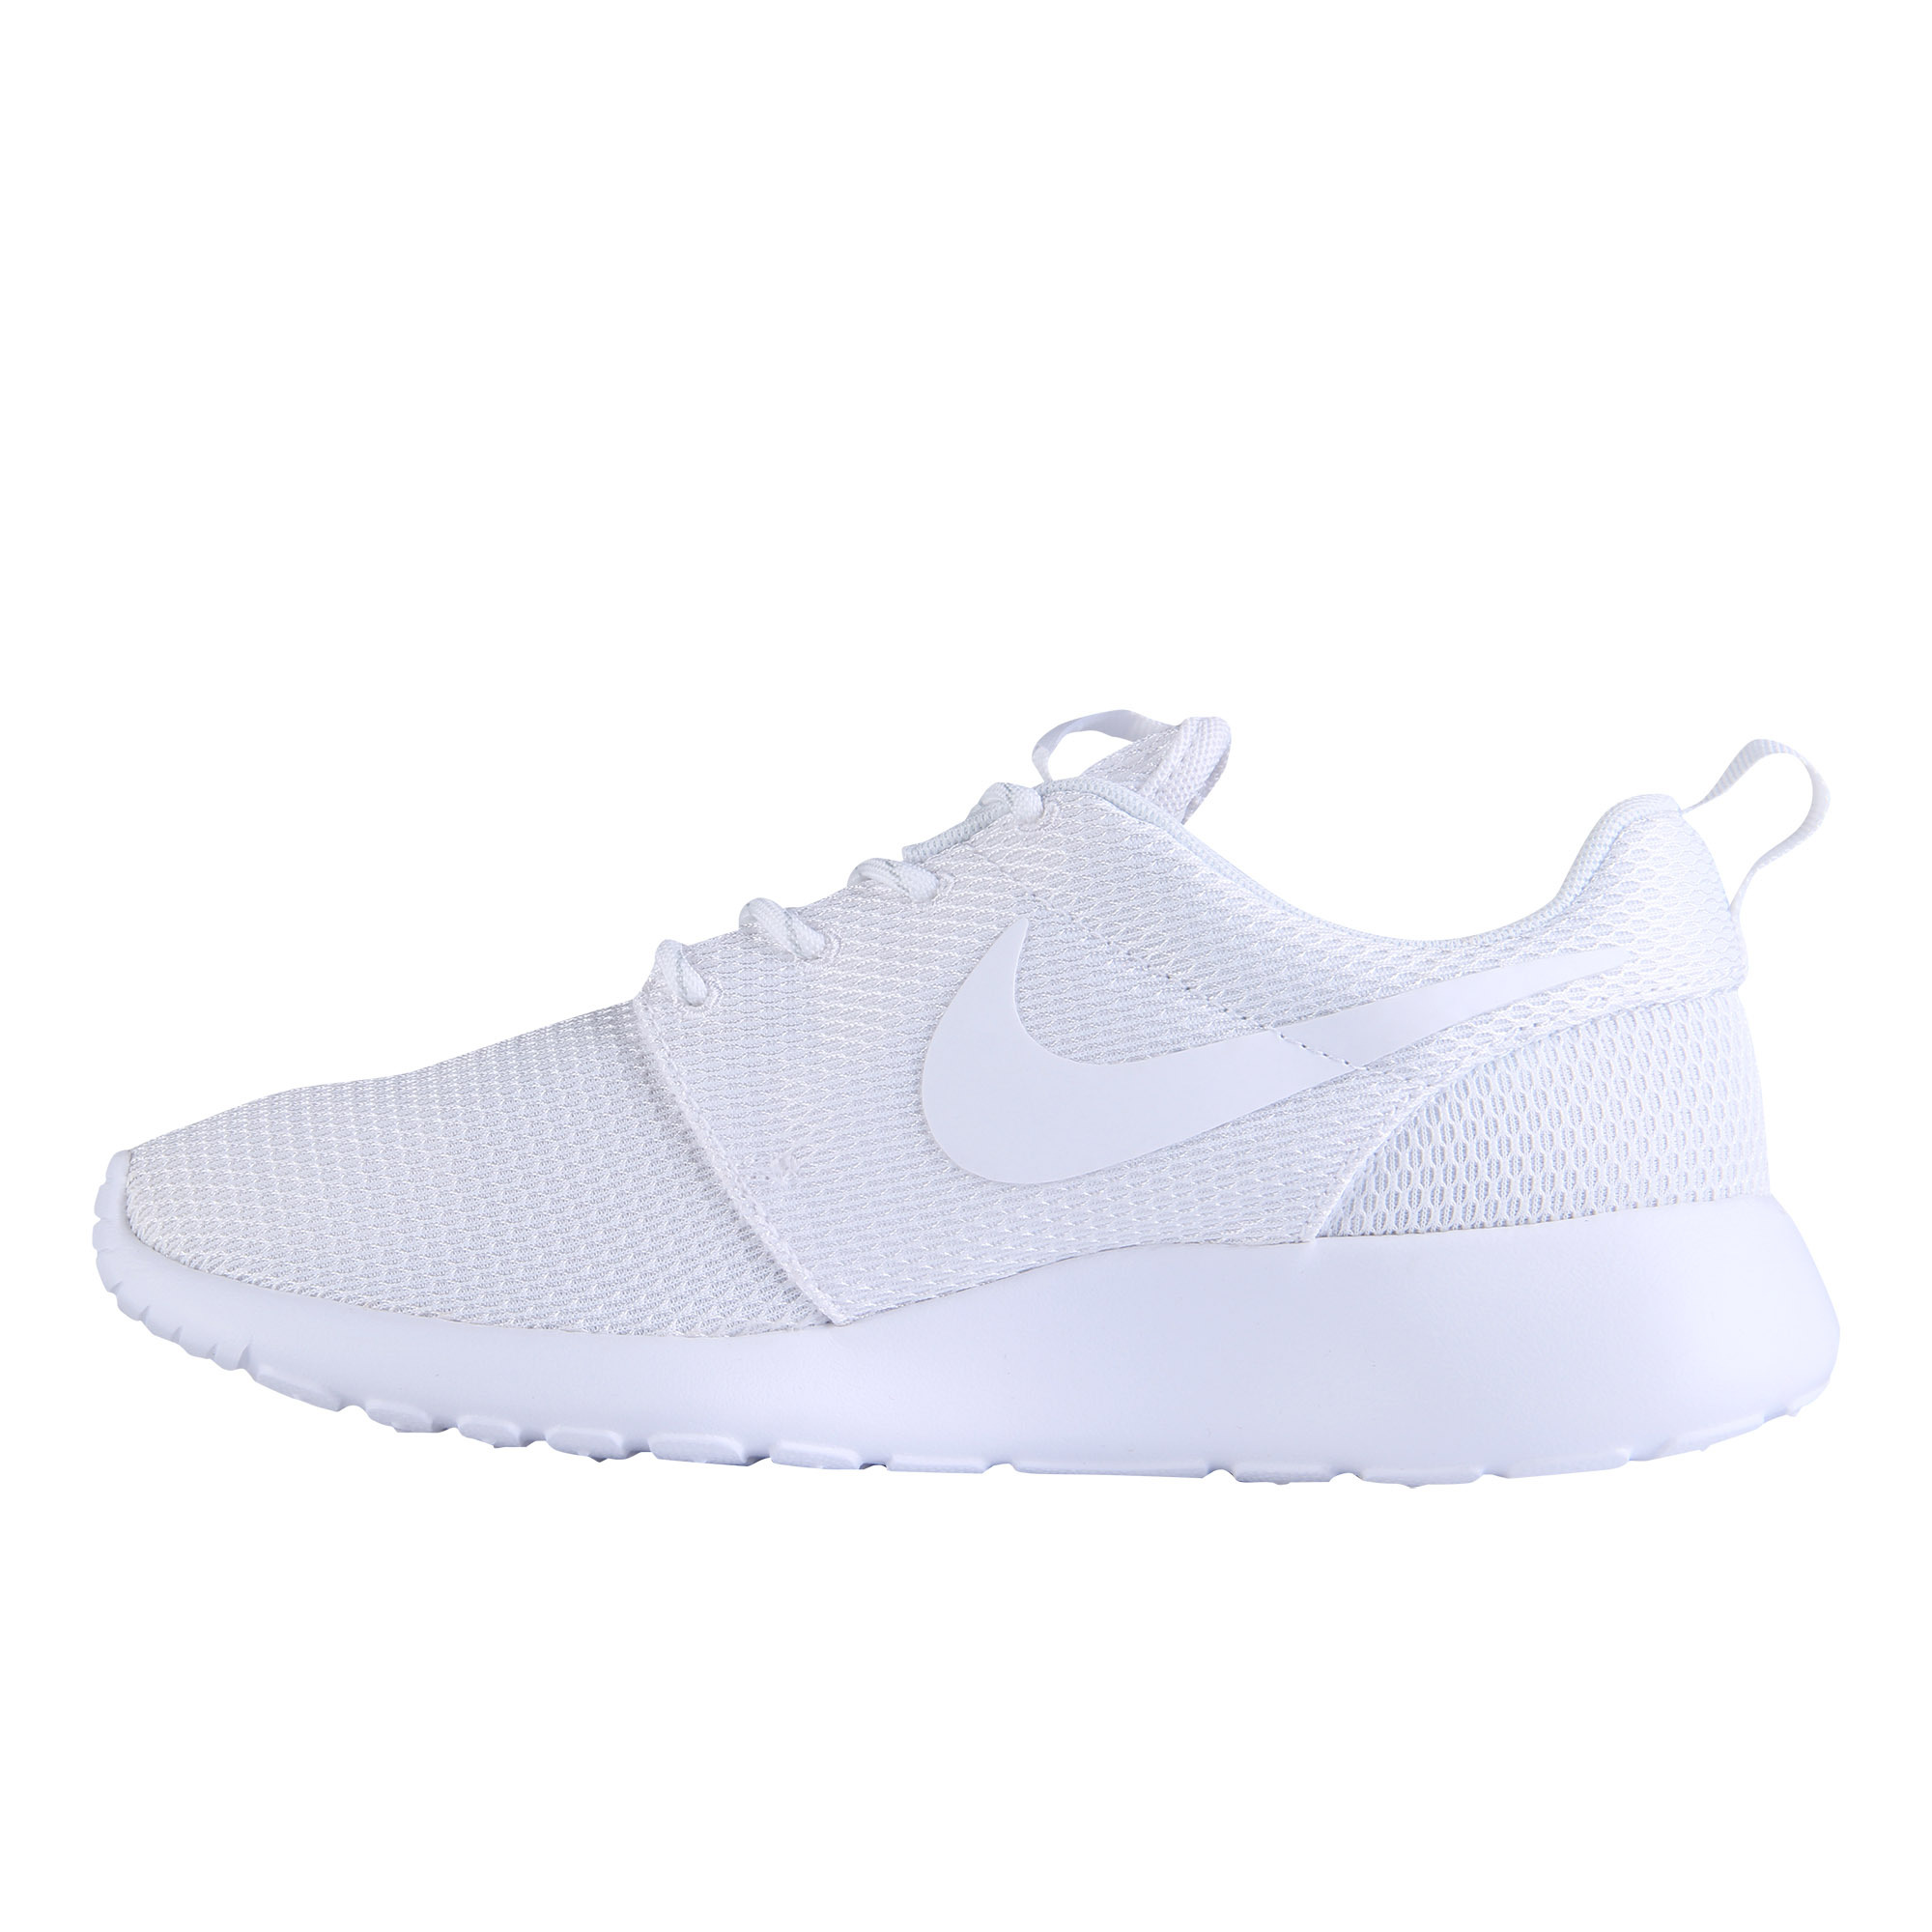 Buy Authentic nike roshe run black and white silver crochet rope men and  women casual running shoes 511882 812655 in Cheap Price on m.alibaba.com